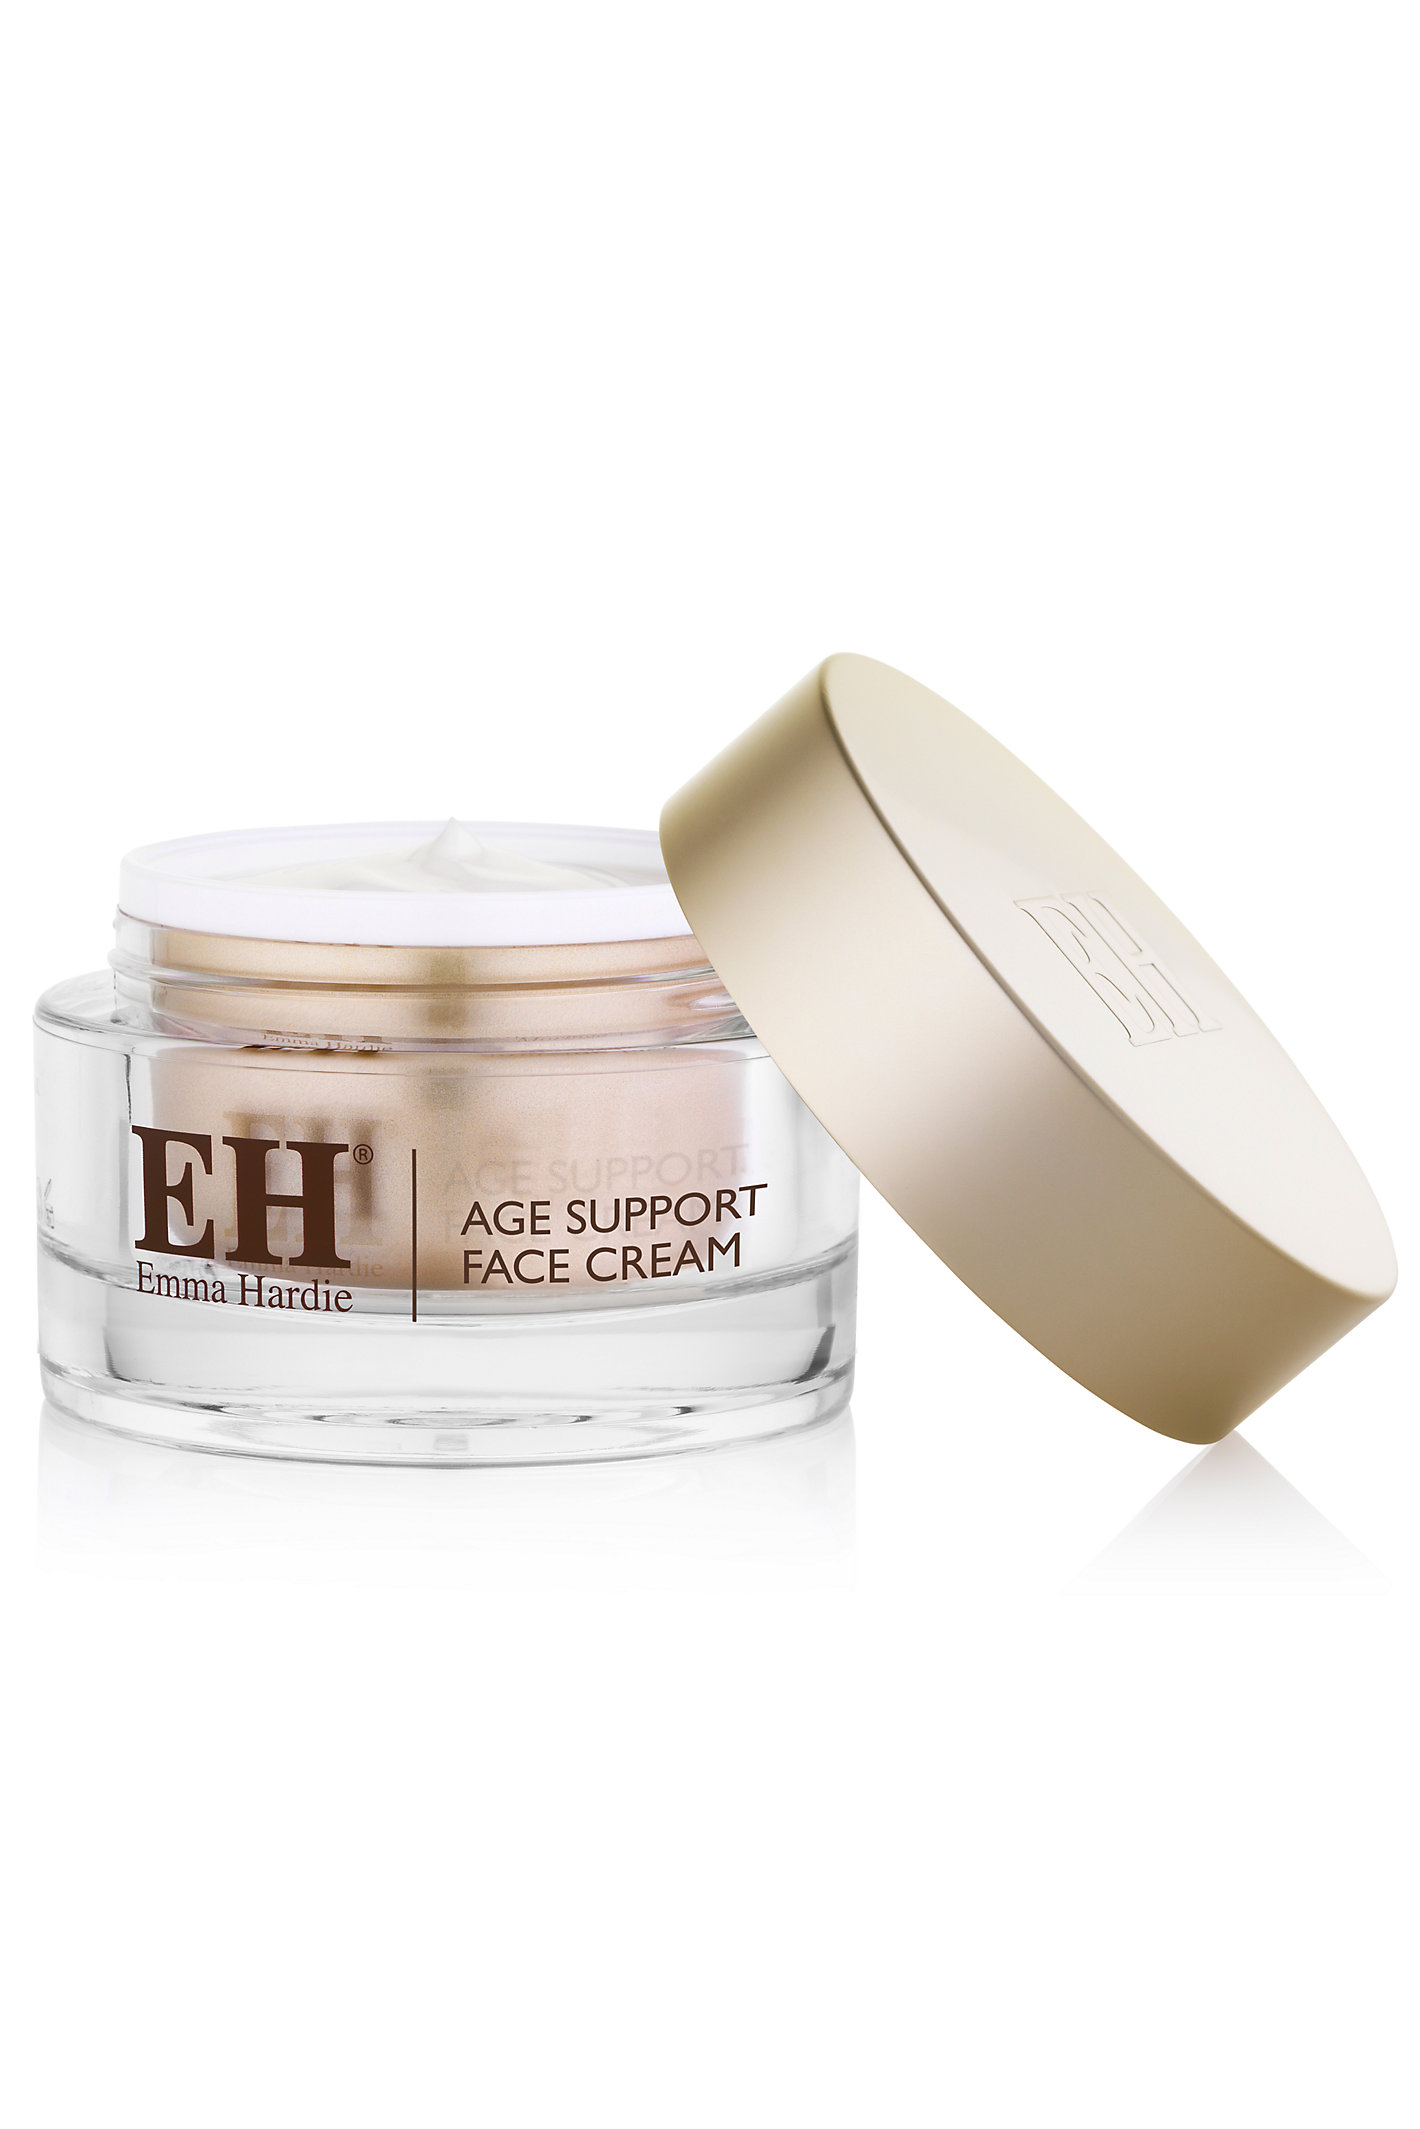 Age Support Face Cream